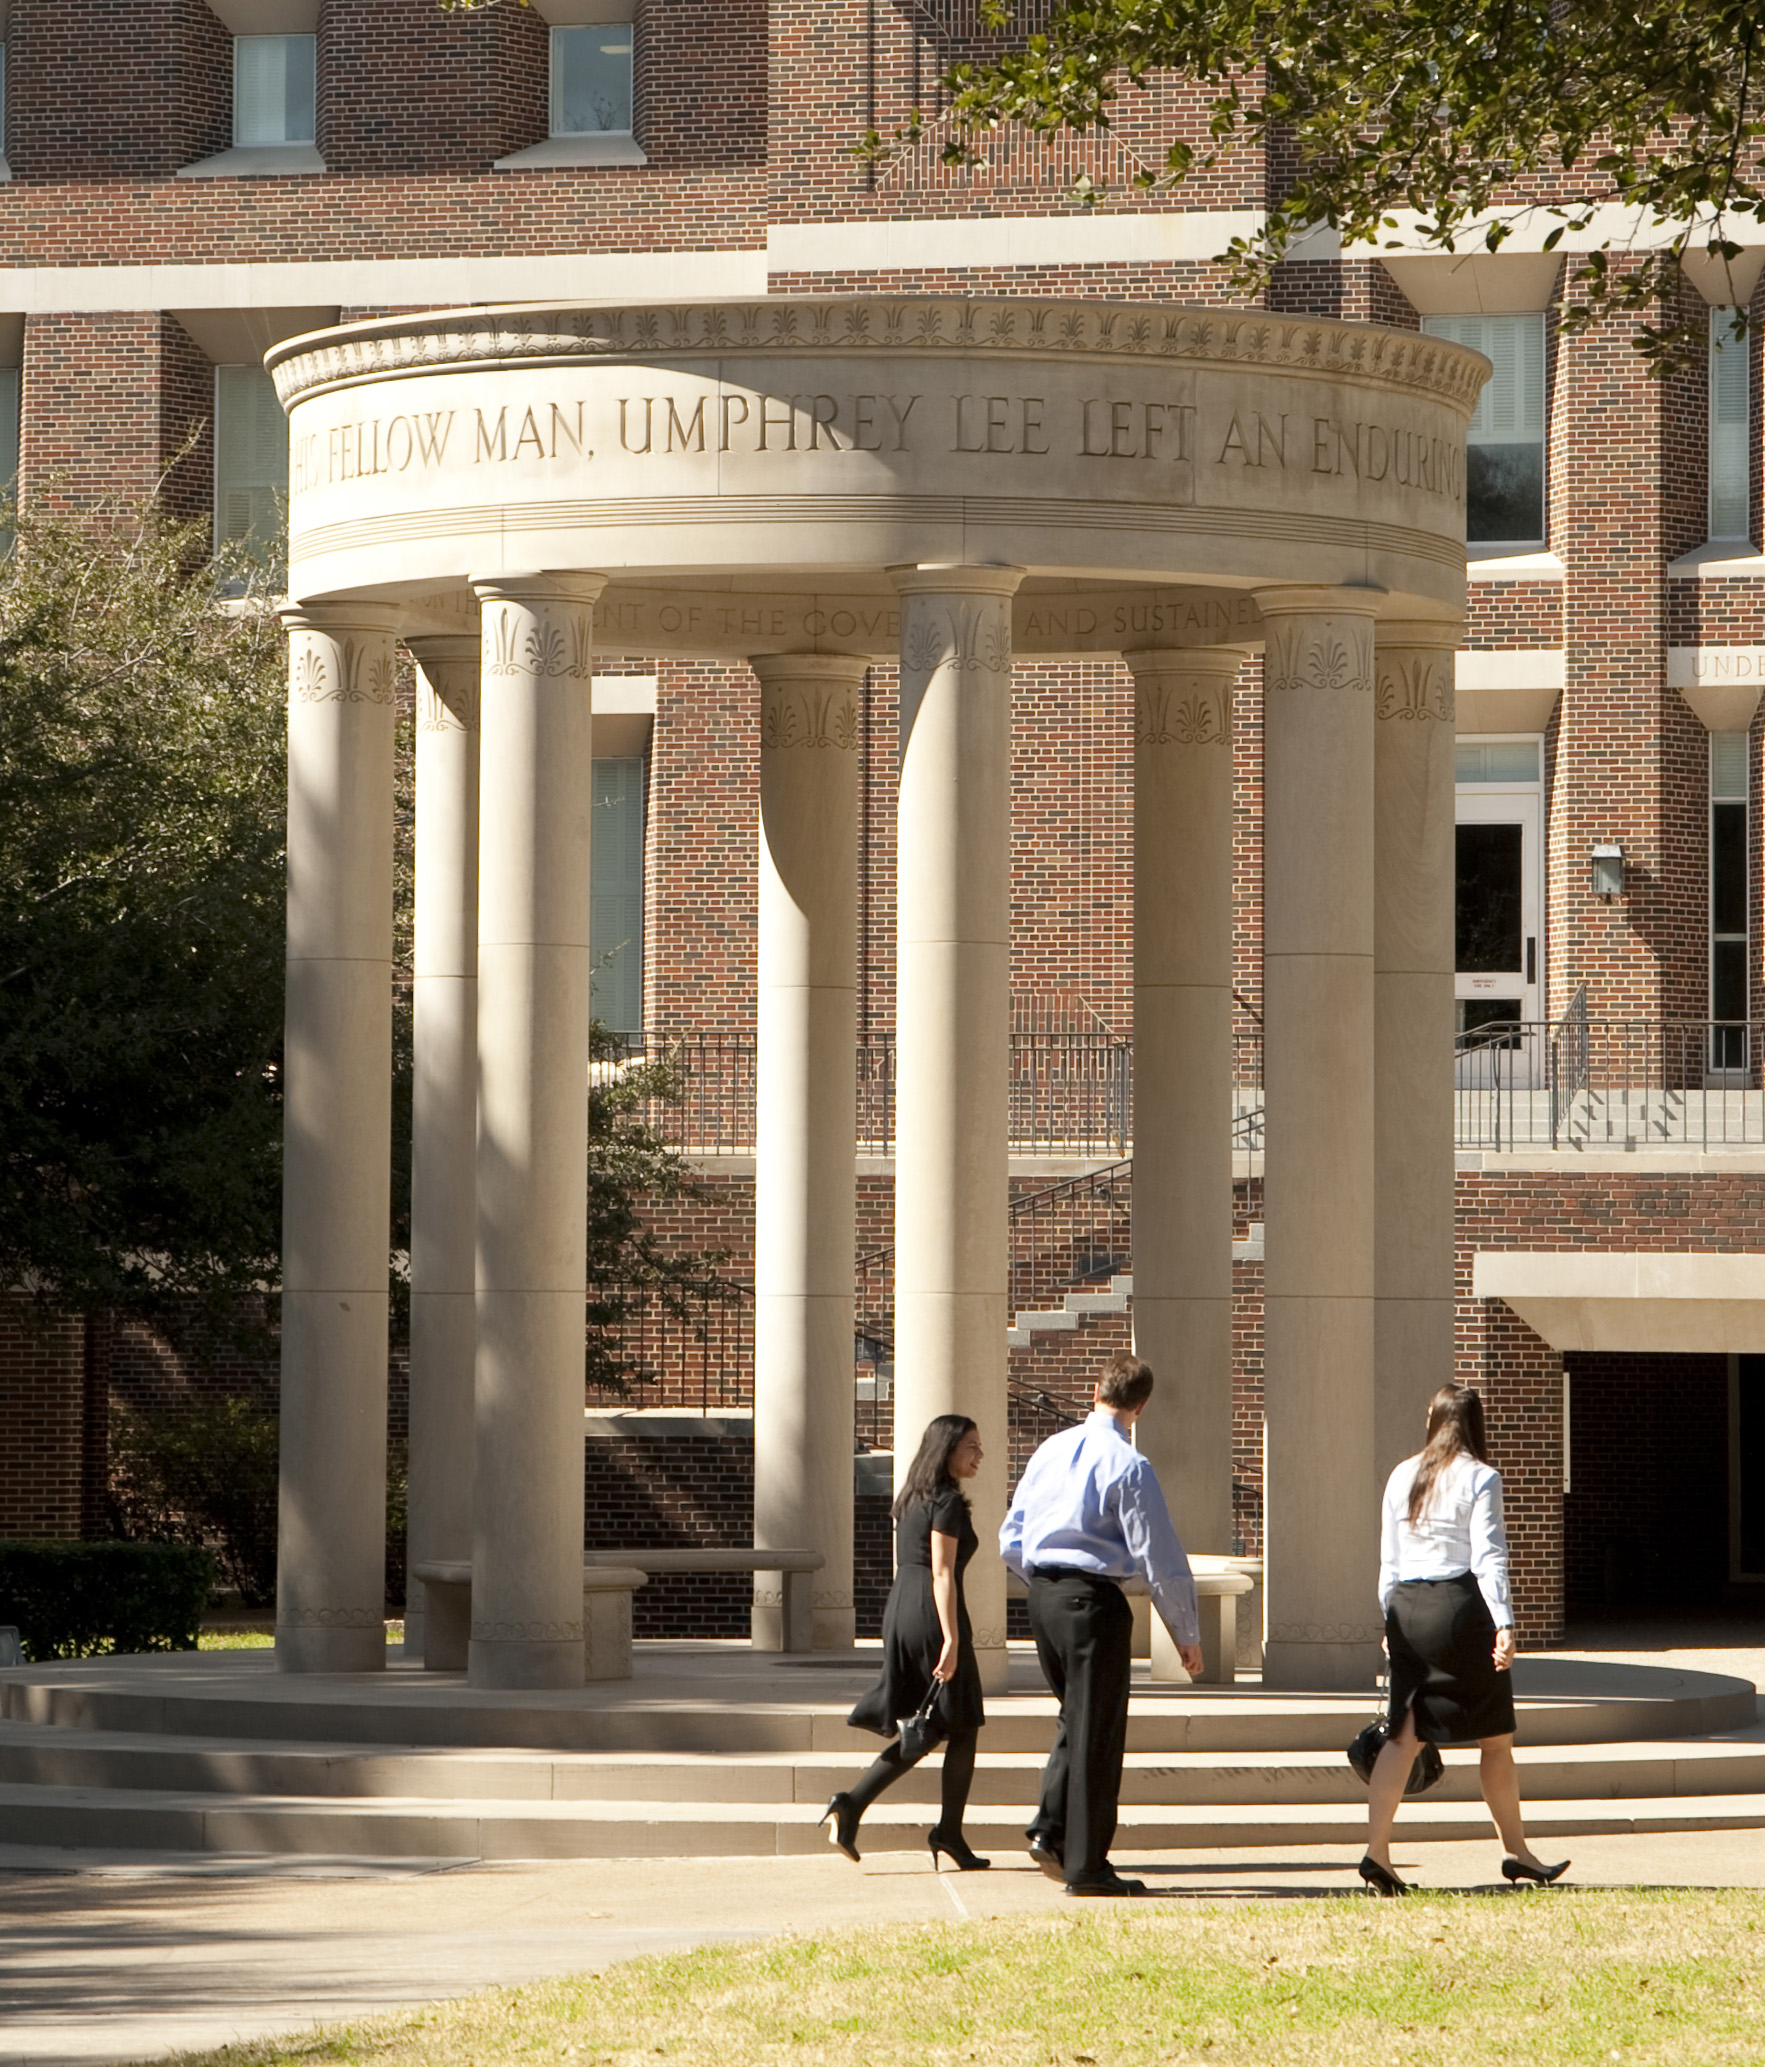 The Umphrey Lee Tempietto in the Dedman School of Law Quad, SMU